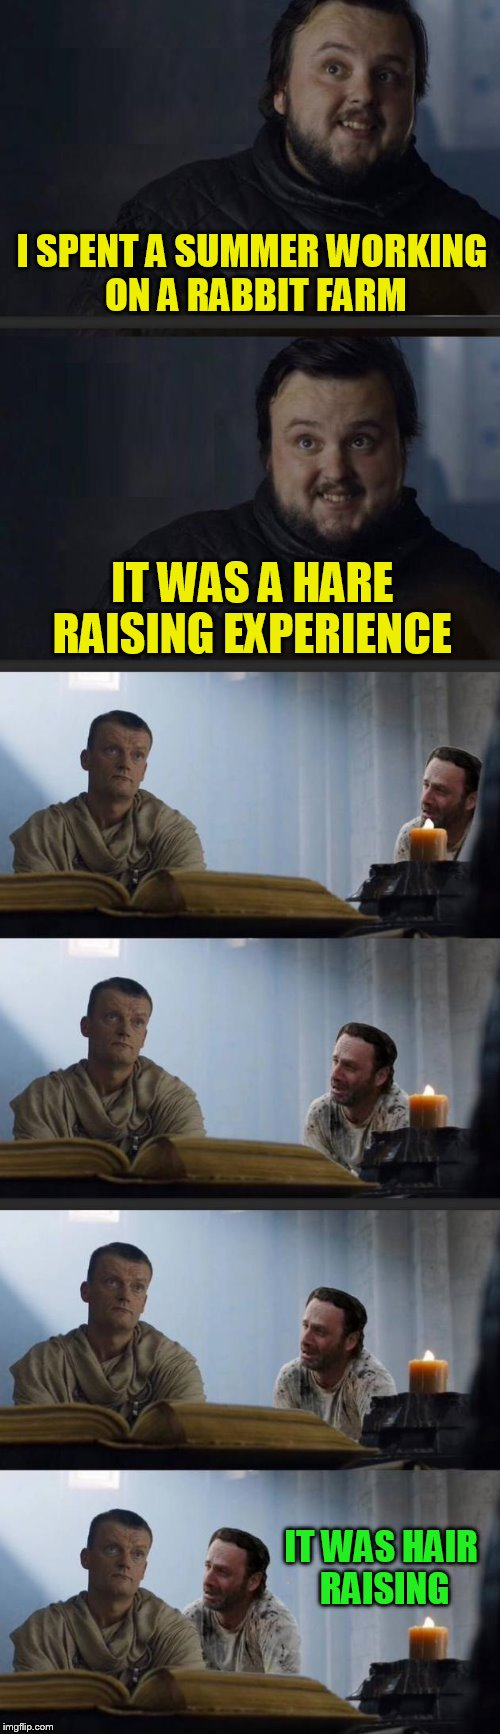 Sam The Pun Slayer!  | I SPENT A SUMMER WORKING ON A RABBIT FARM IT WAS A HARE RAISING EXPERIENCE IT WAS HAIR RAISING | image tagged in memes,samwell tarly,puns,game of thrones,the walking dead,rick grimes | made w/ Imgflip meme maker